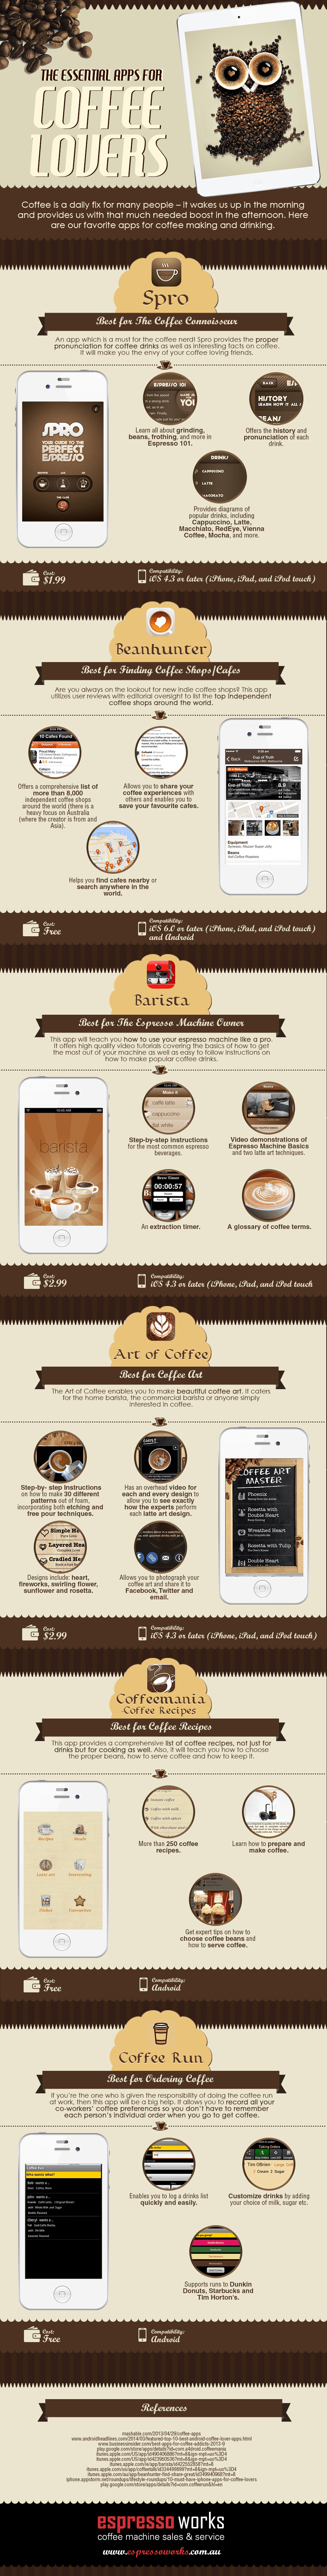 Essential Apps For Coffee Lovers